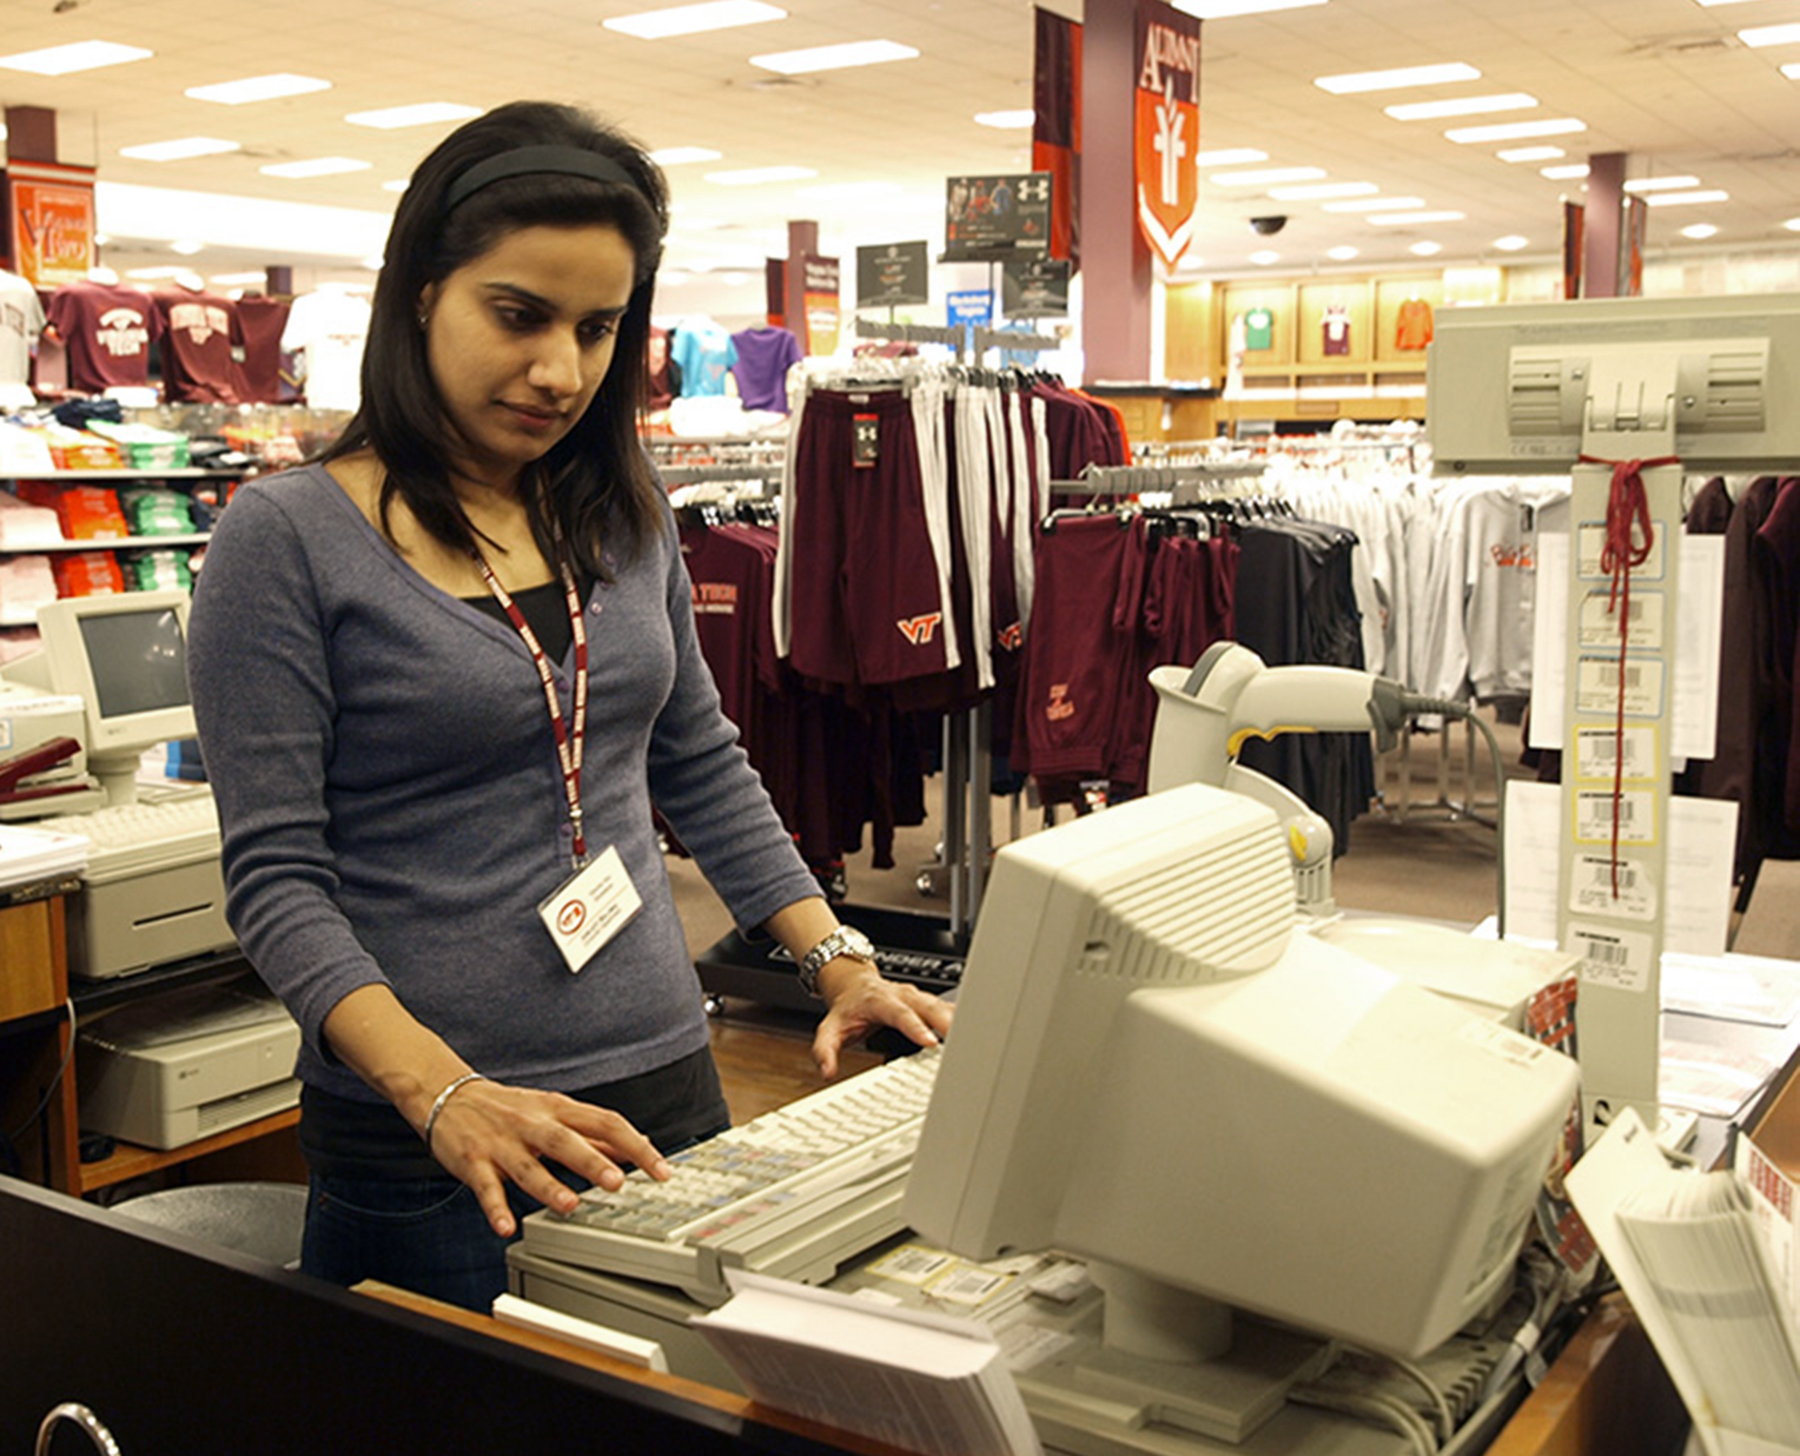 Amijot Bajwa of Dehli, India, a Volume Two bookstore employee who is working on her master's in business administration in the Pamplin College of Business, takes donations from customers for Hokies United™.